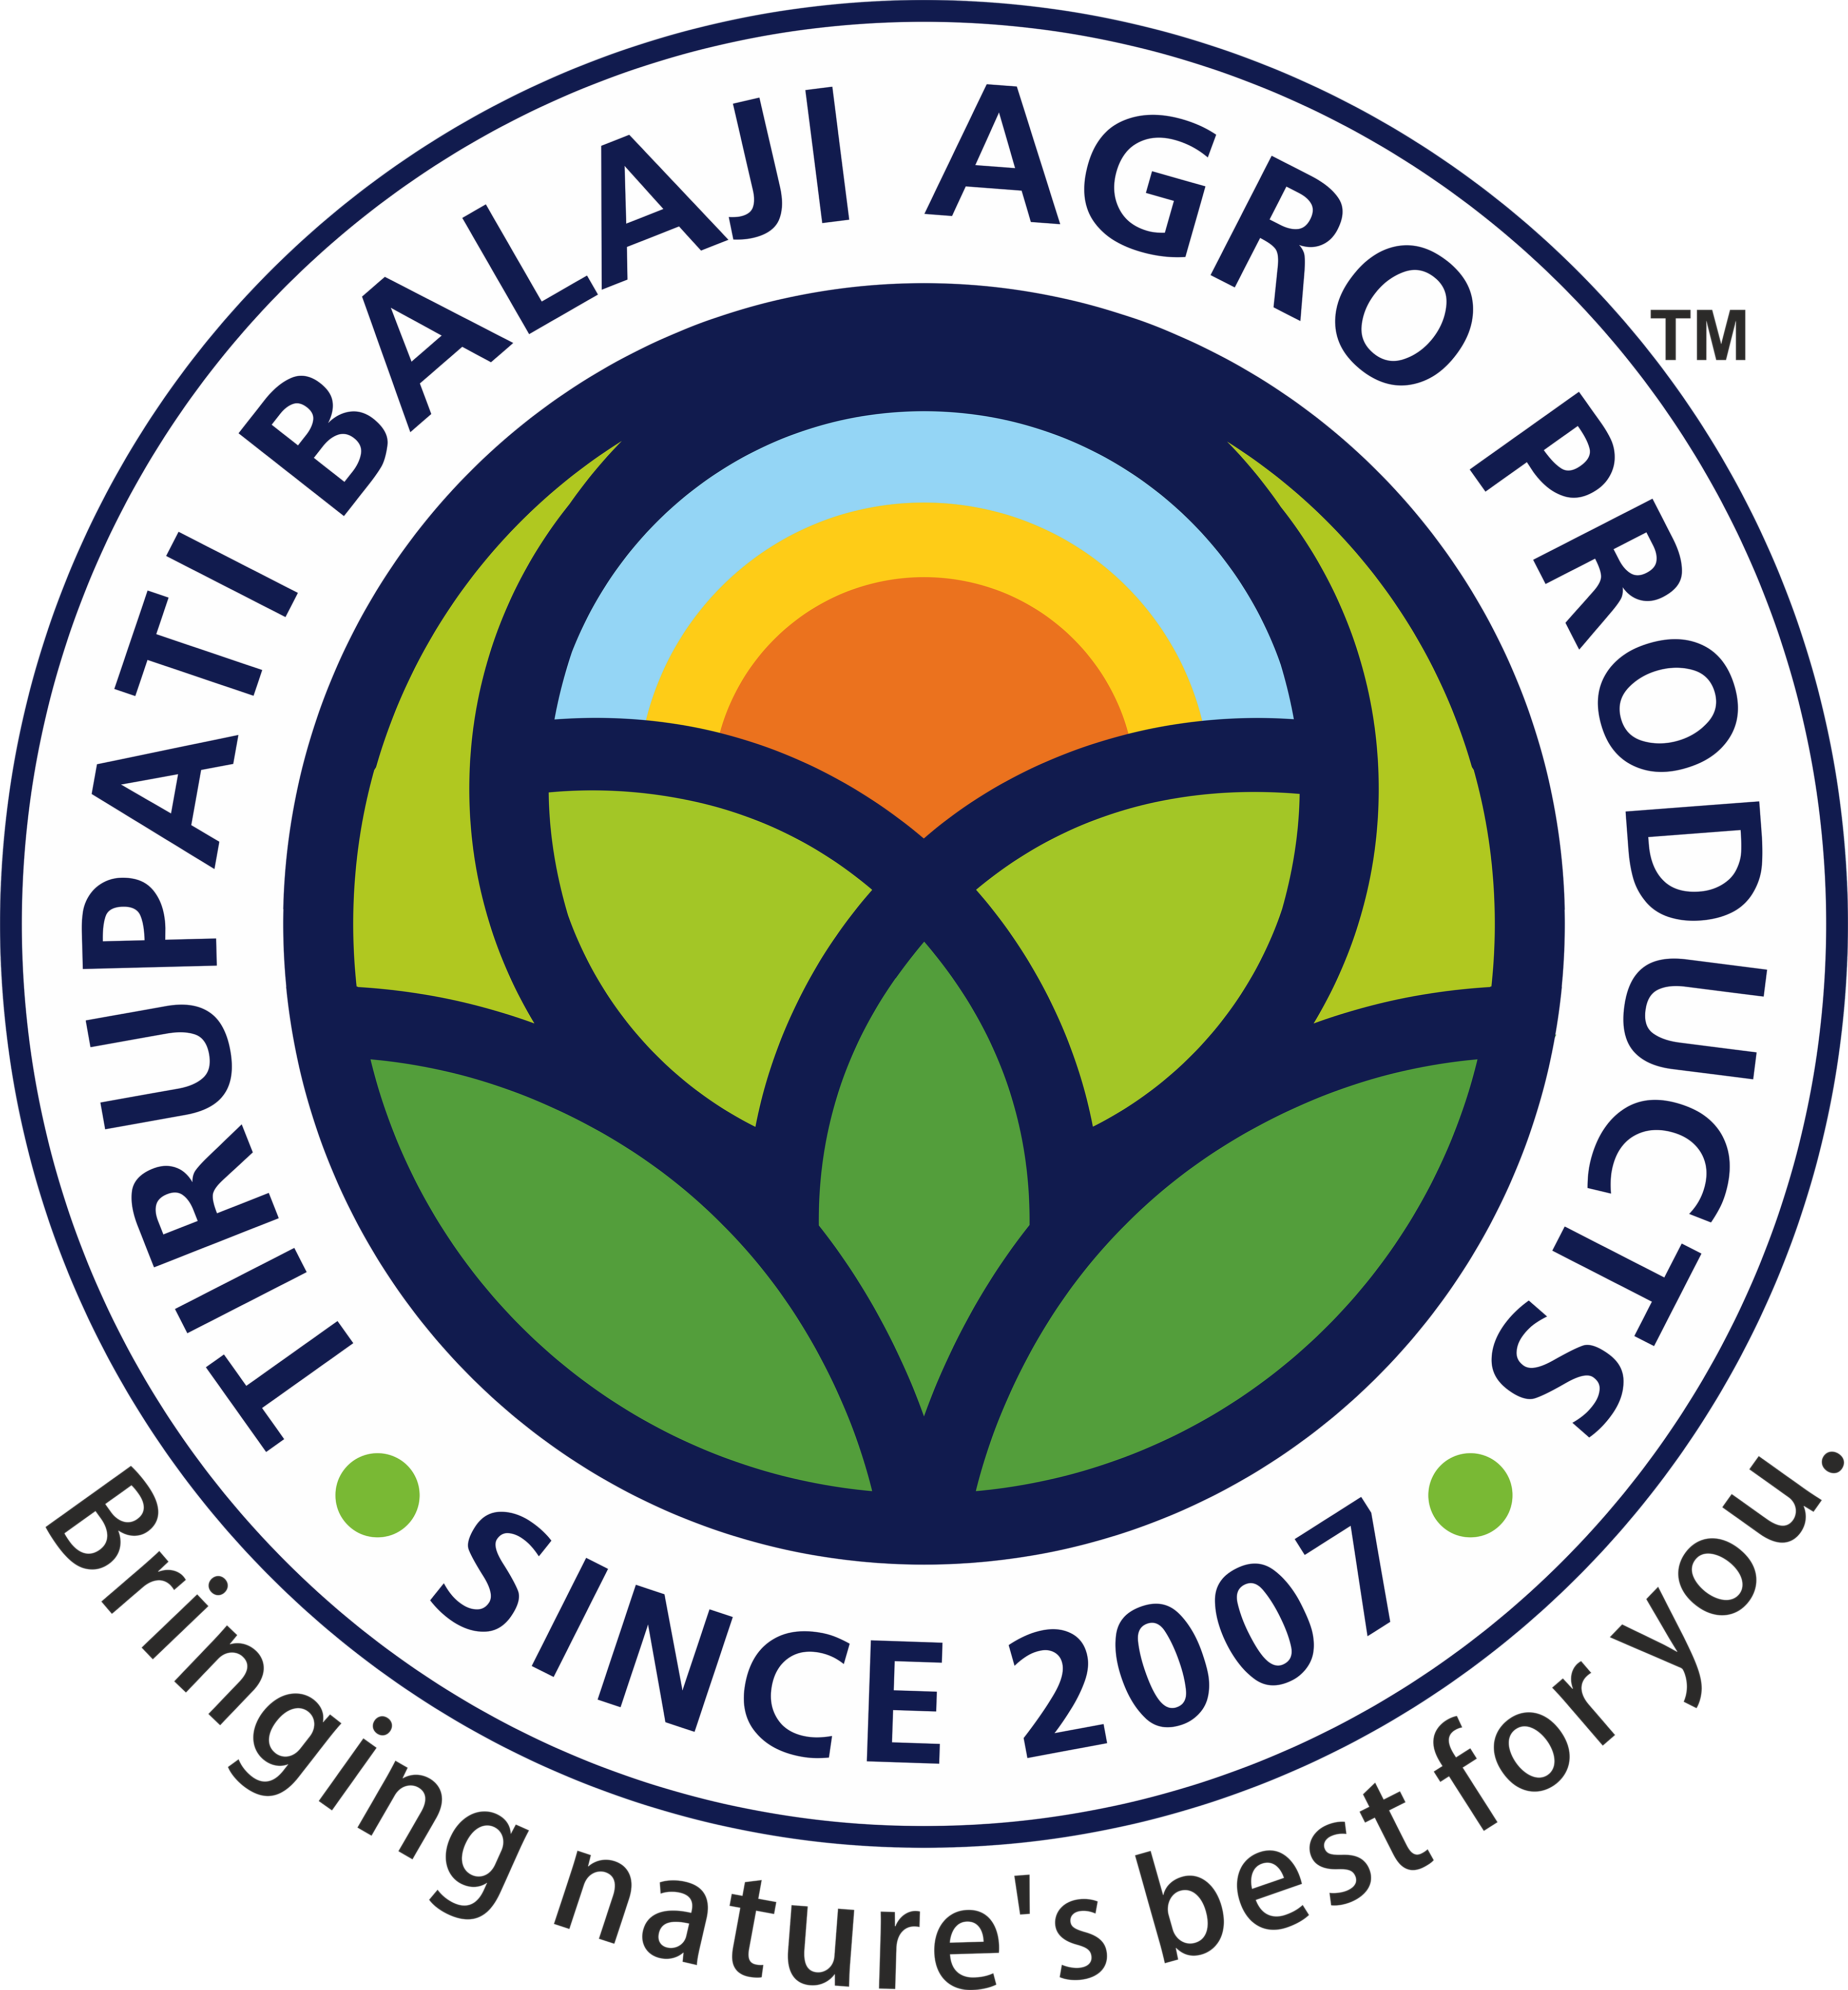 Tirupati Agro Products